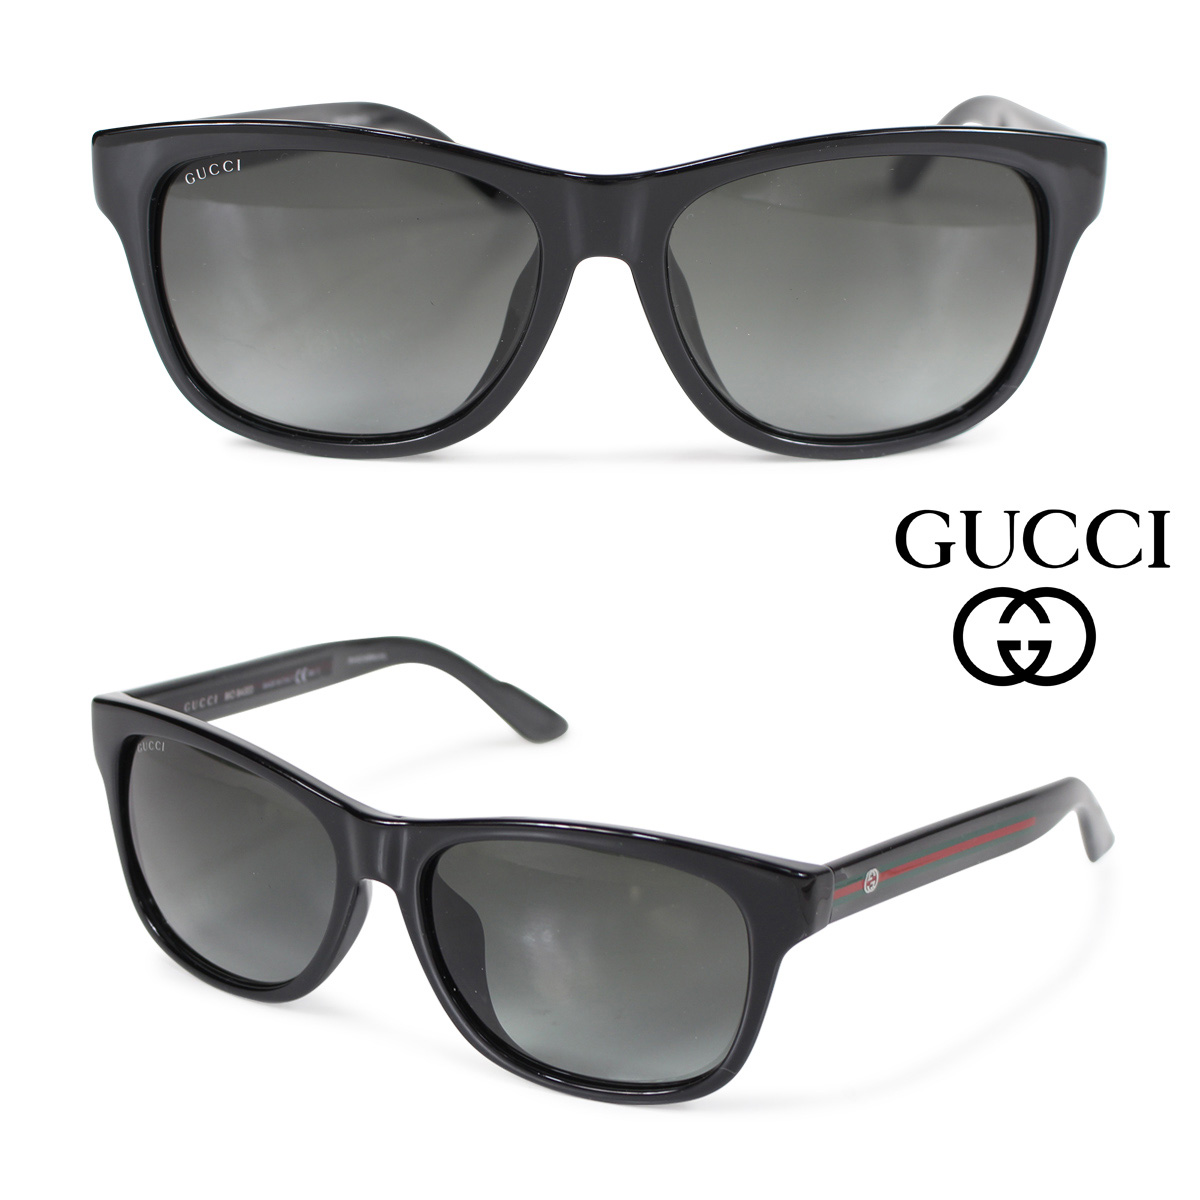 416a045d23 Gucci GUCCI sunglasses men gap Dis eyewear 3735FS IMXPT black  4 25 Shinnyu  load